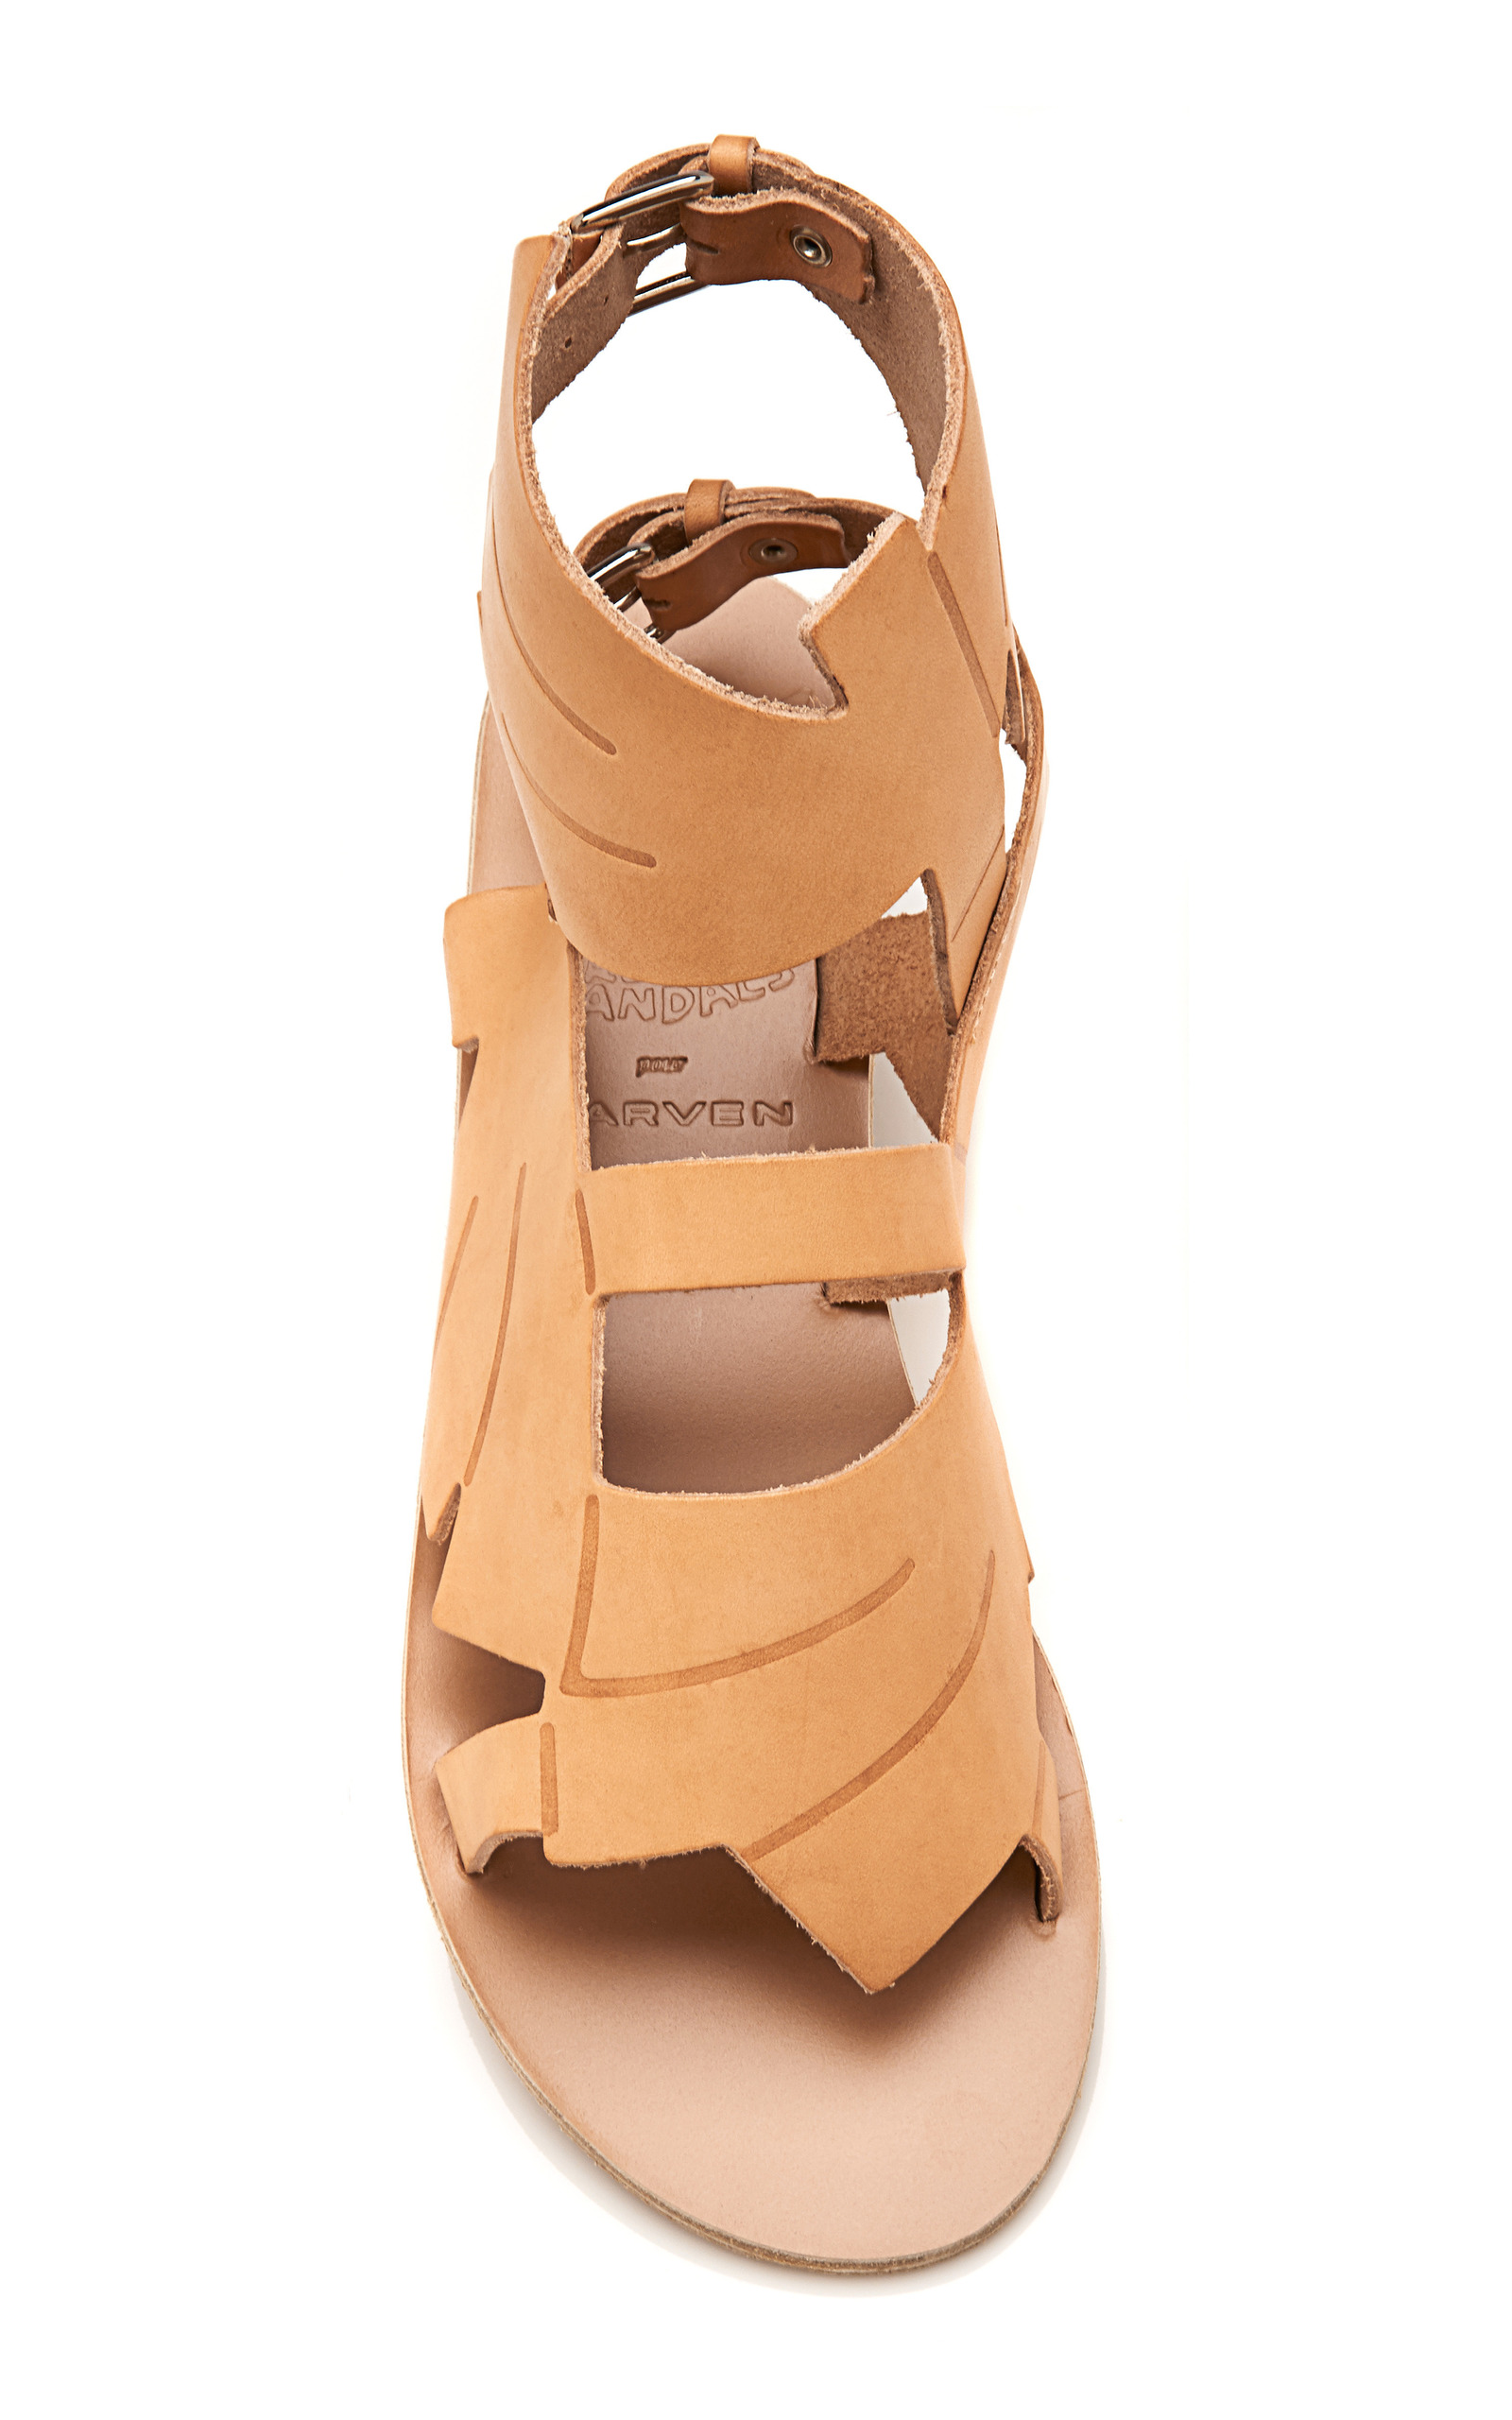 For Carven Banana Leaf Winged Leather Sandals In Beige